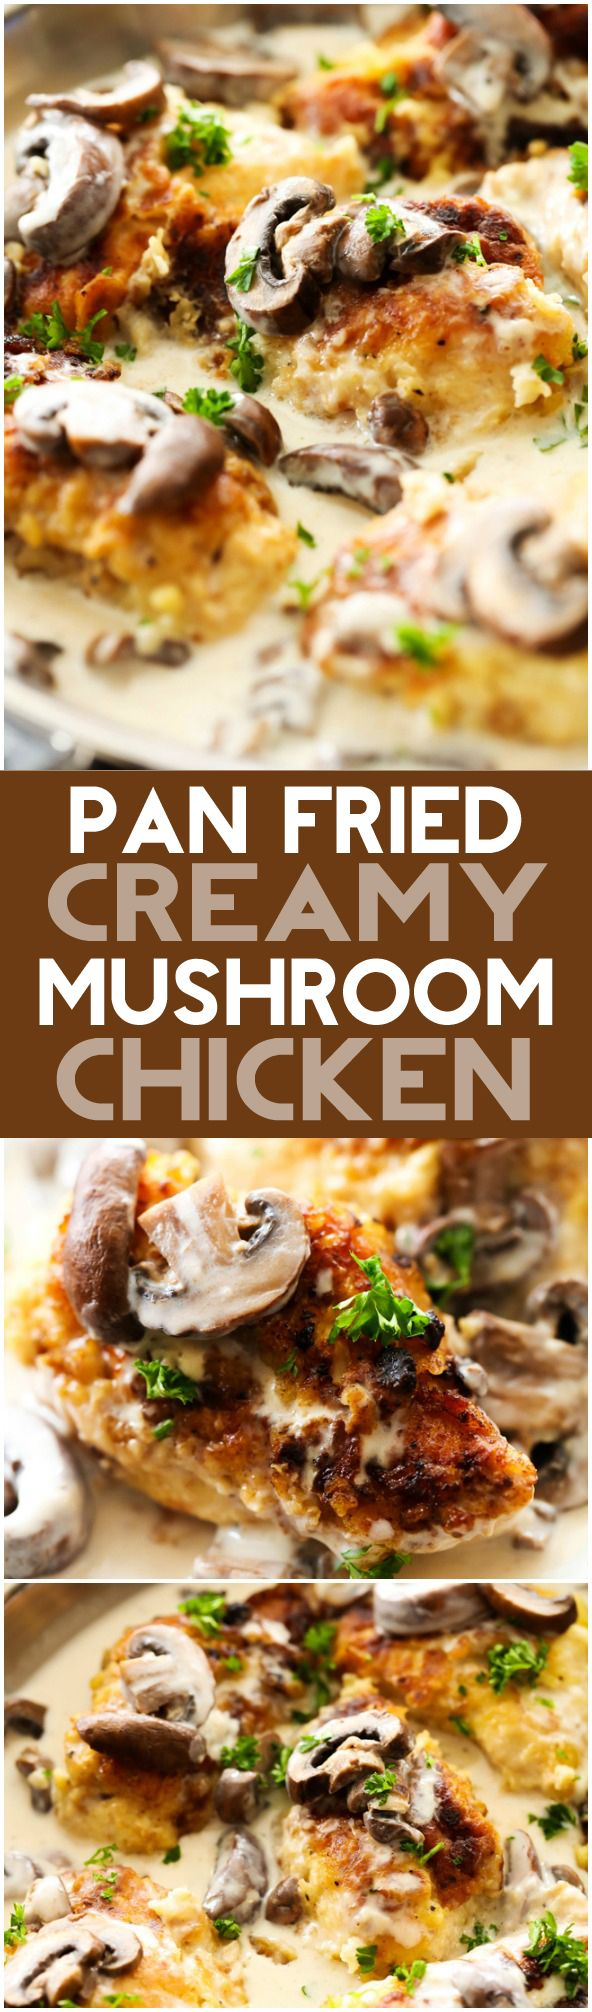 Pan-Fried Creamy Mushroom Chicken... A delicious battered chicken that is first pan-fried then baked and topped with a creamy mushroom gravy. This is a true restaurant quality dinner that will quickly become a new family favorite!